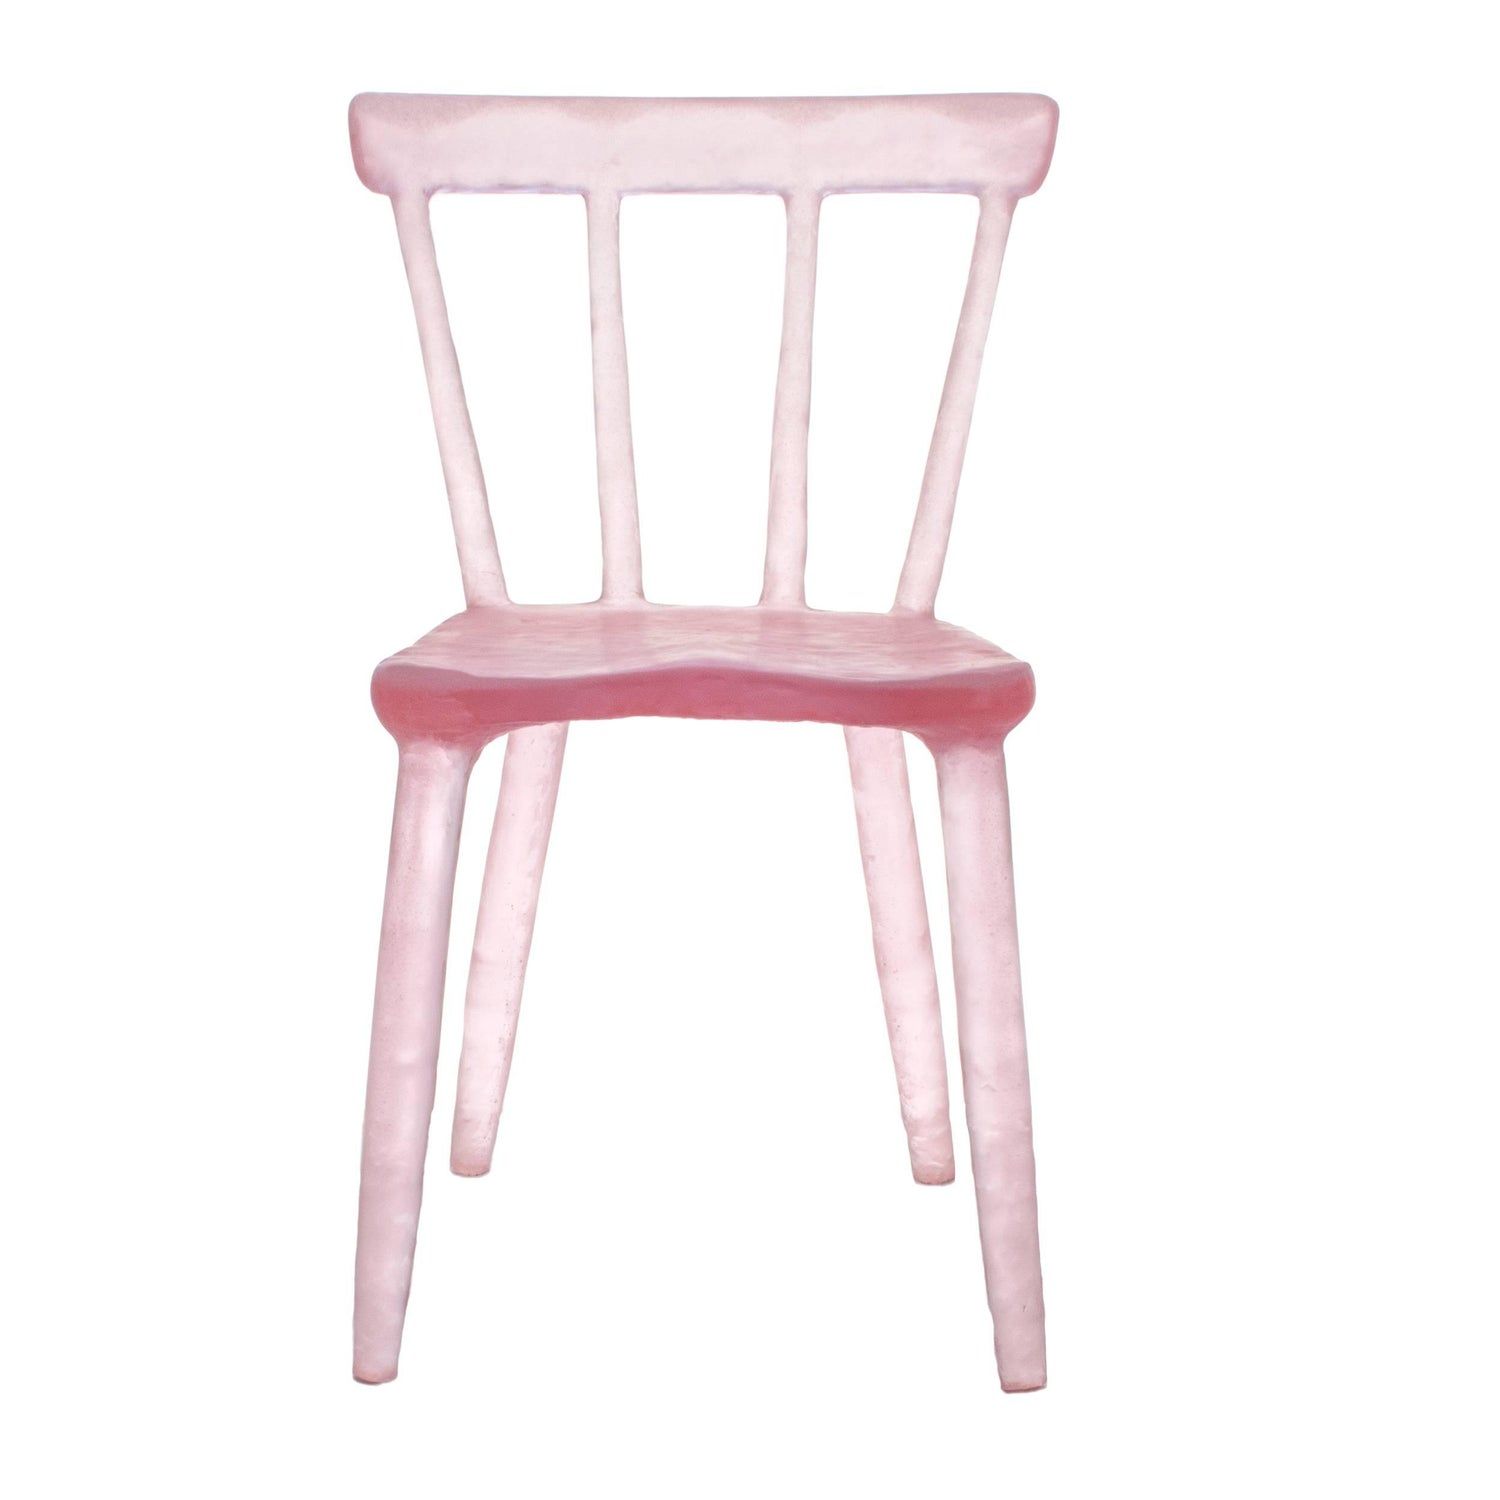 Acrylic Chairs 25 For Sale at 1stdibs